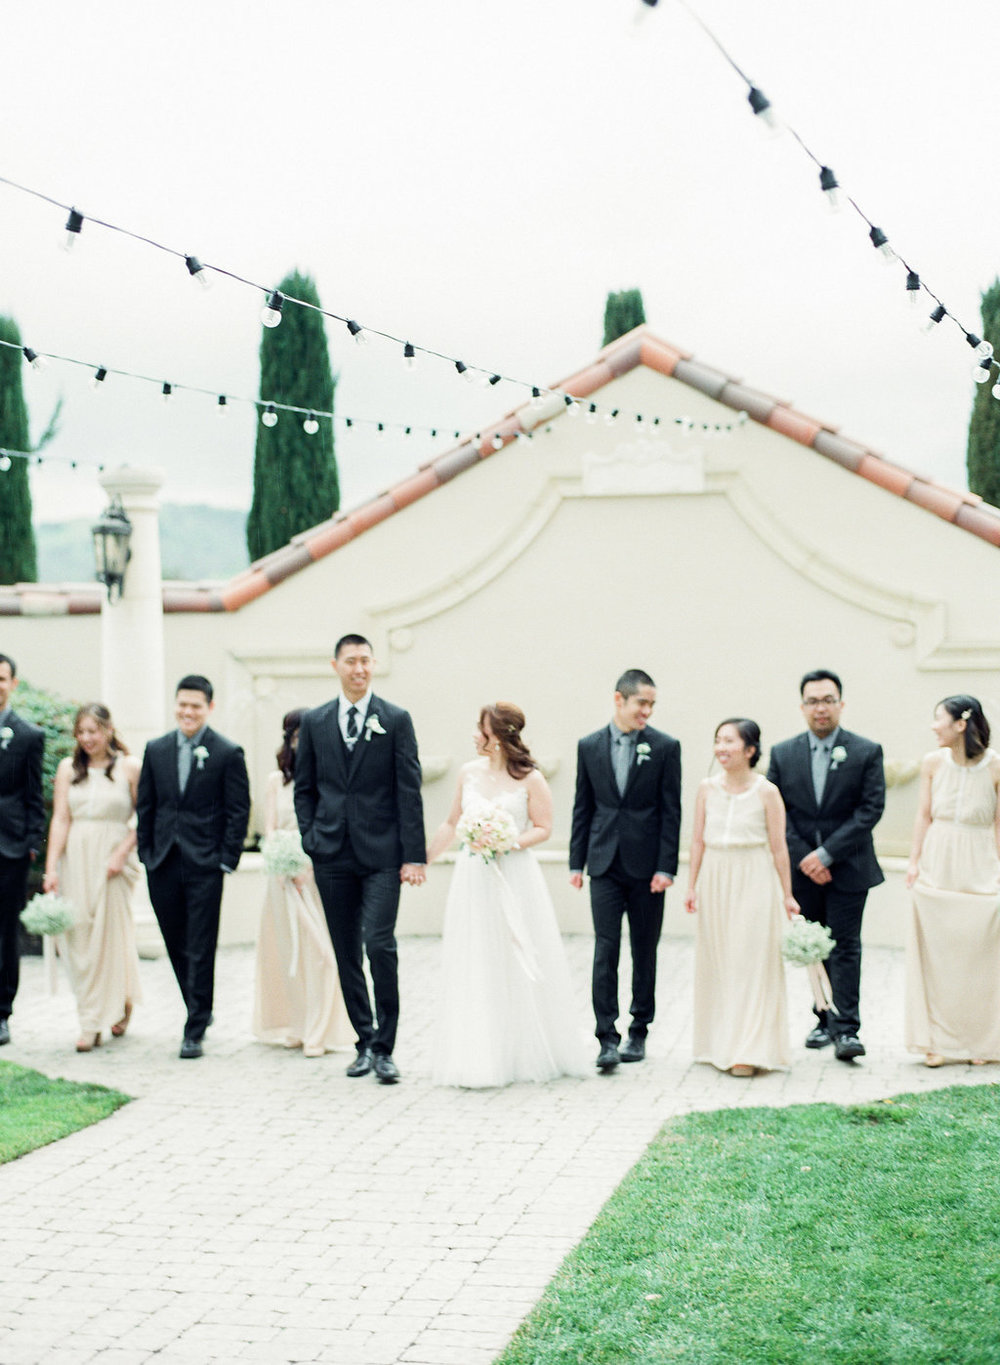 http://www.jennysoi.com/blog/2017/casa-real-california-fine-art-wedding-photographer